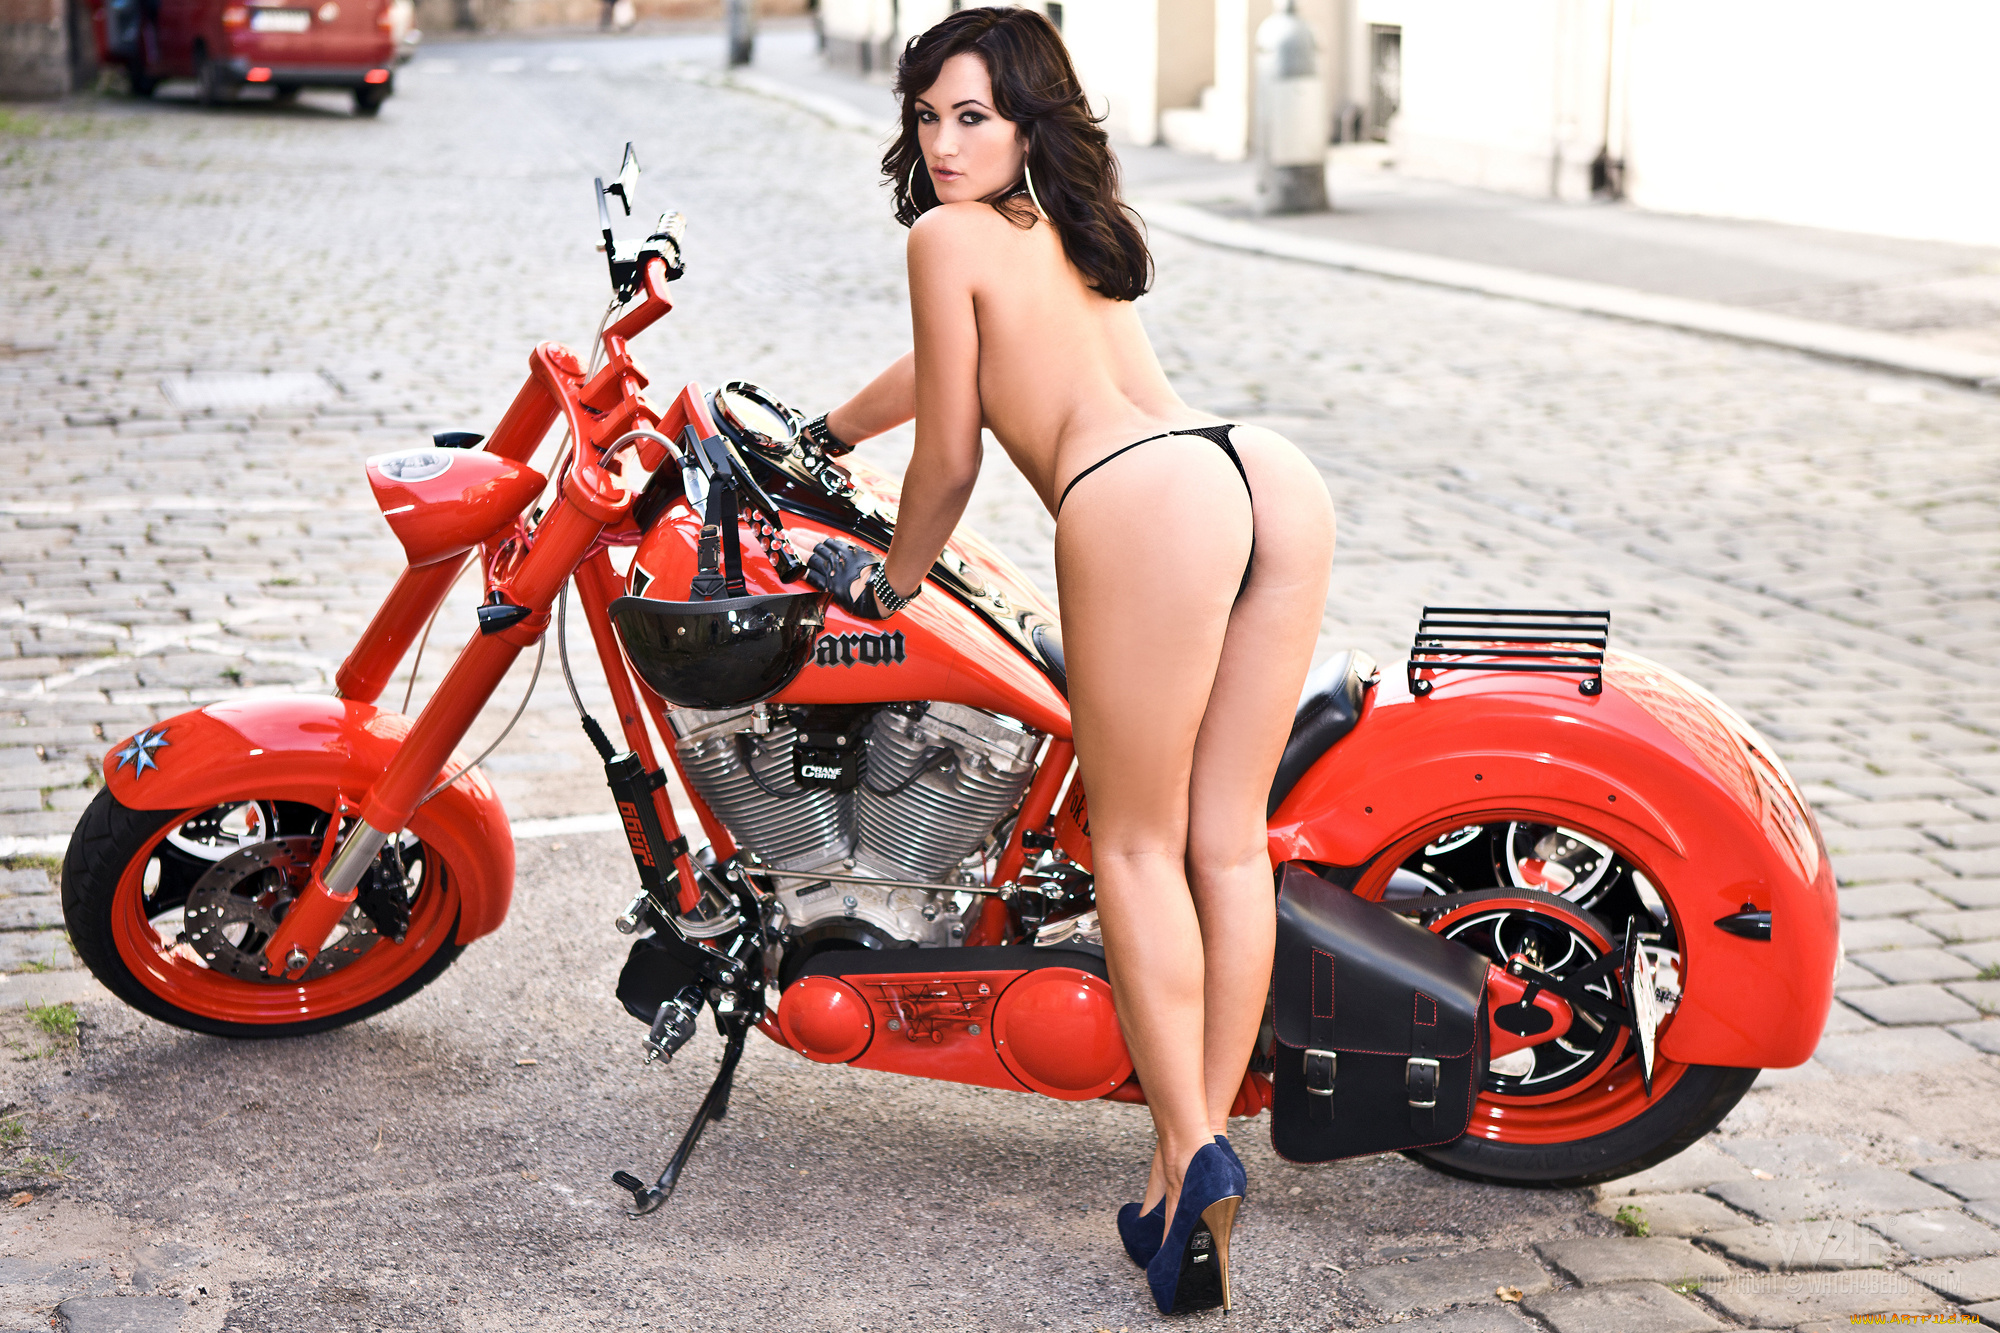 Girls hot girls on motorcycles xxx hot pussy